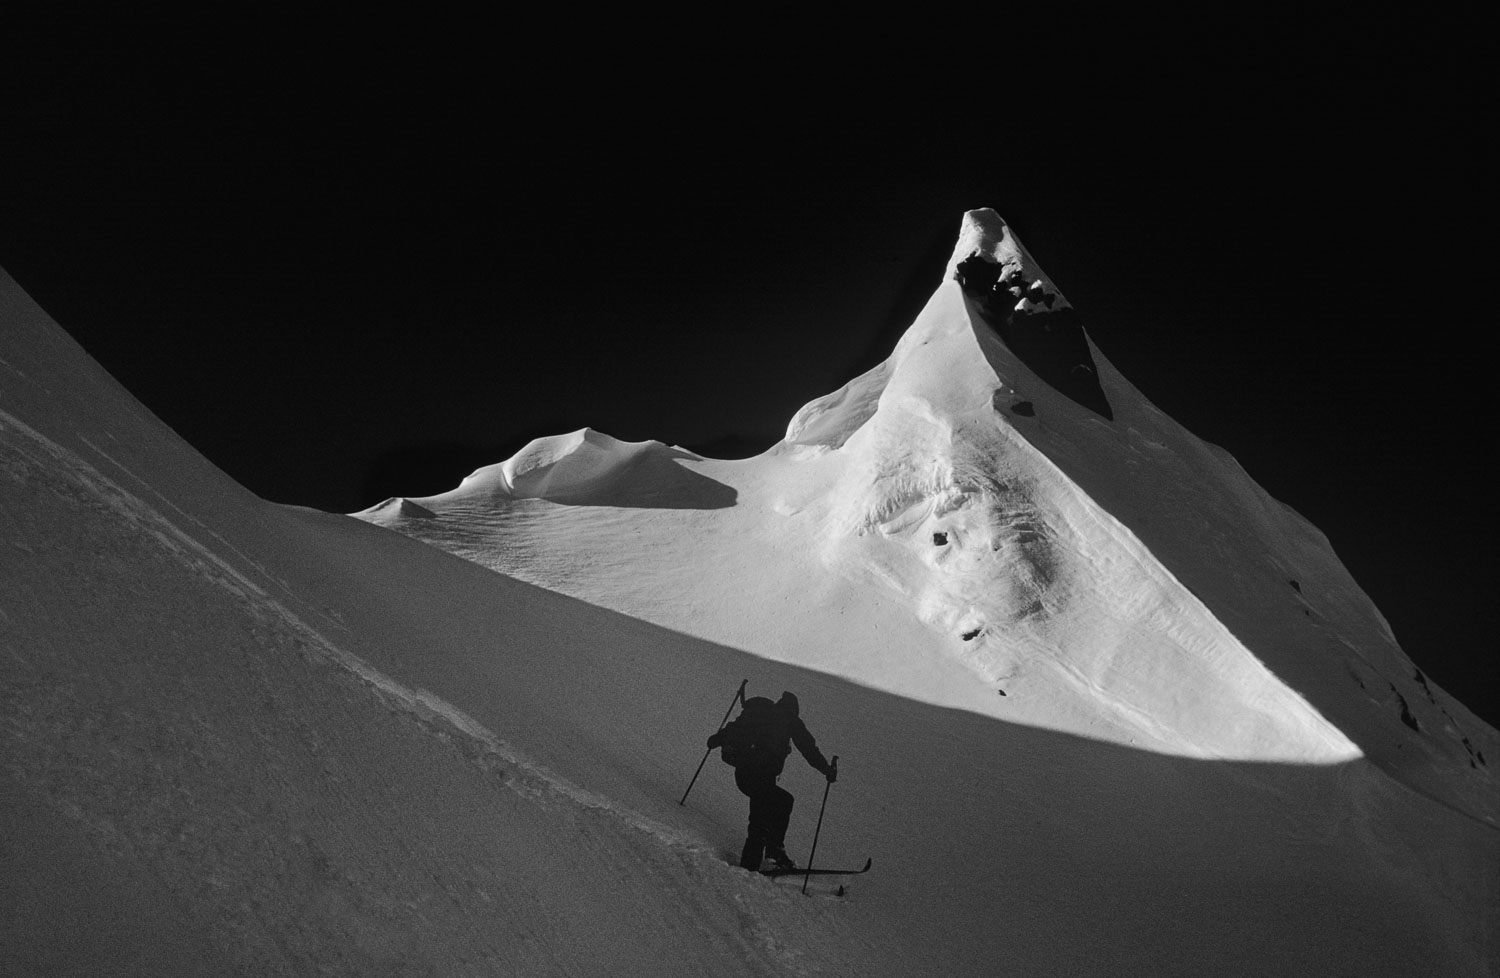 """Monochrome  B&W Cardiac Ascent"". Backcountry Skier Ascends the"